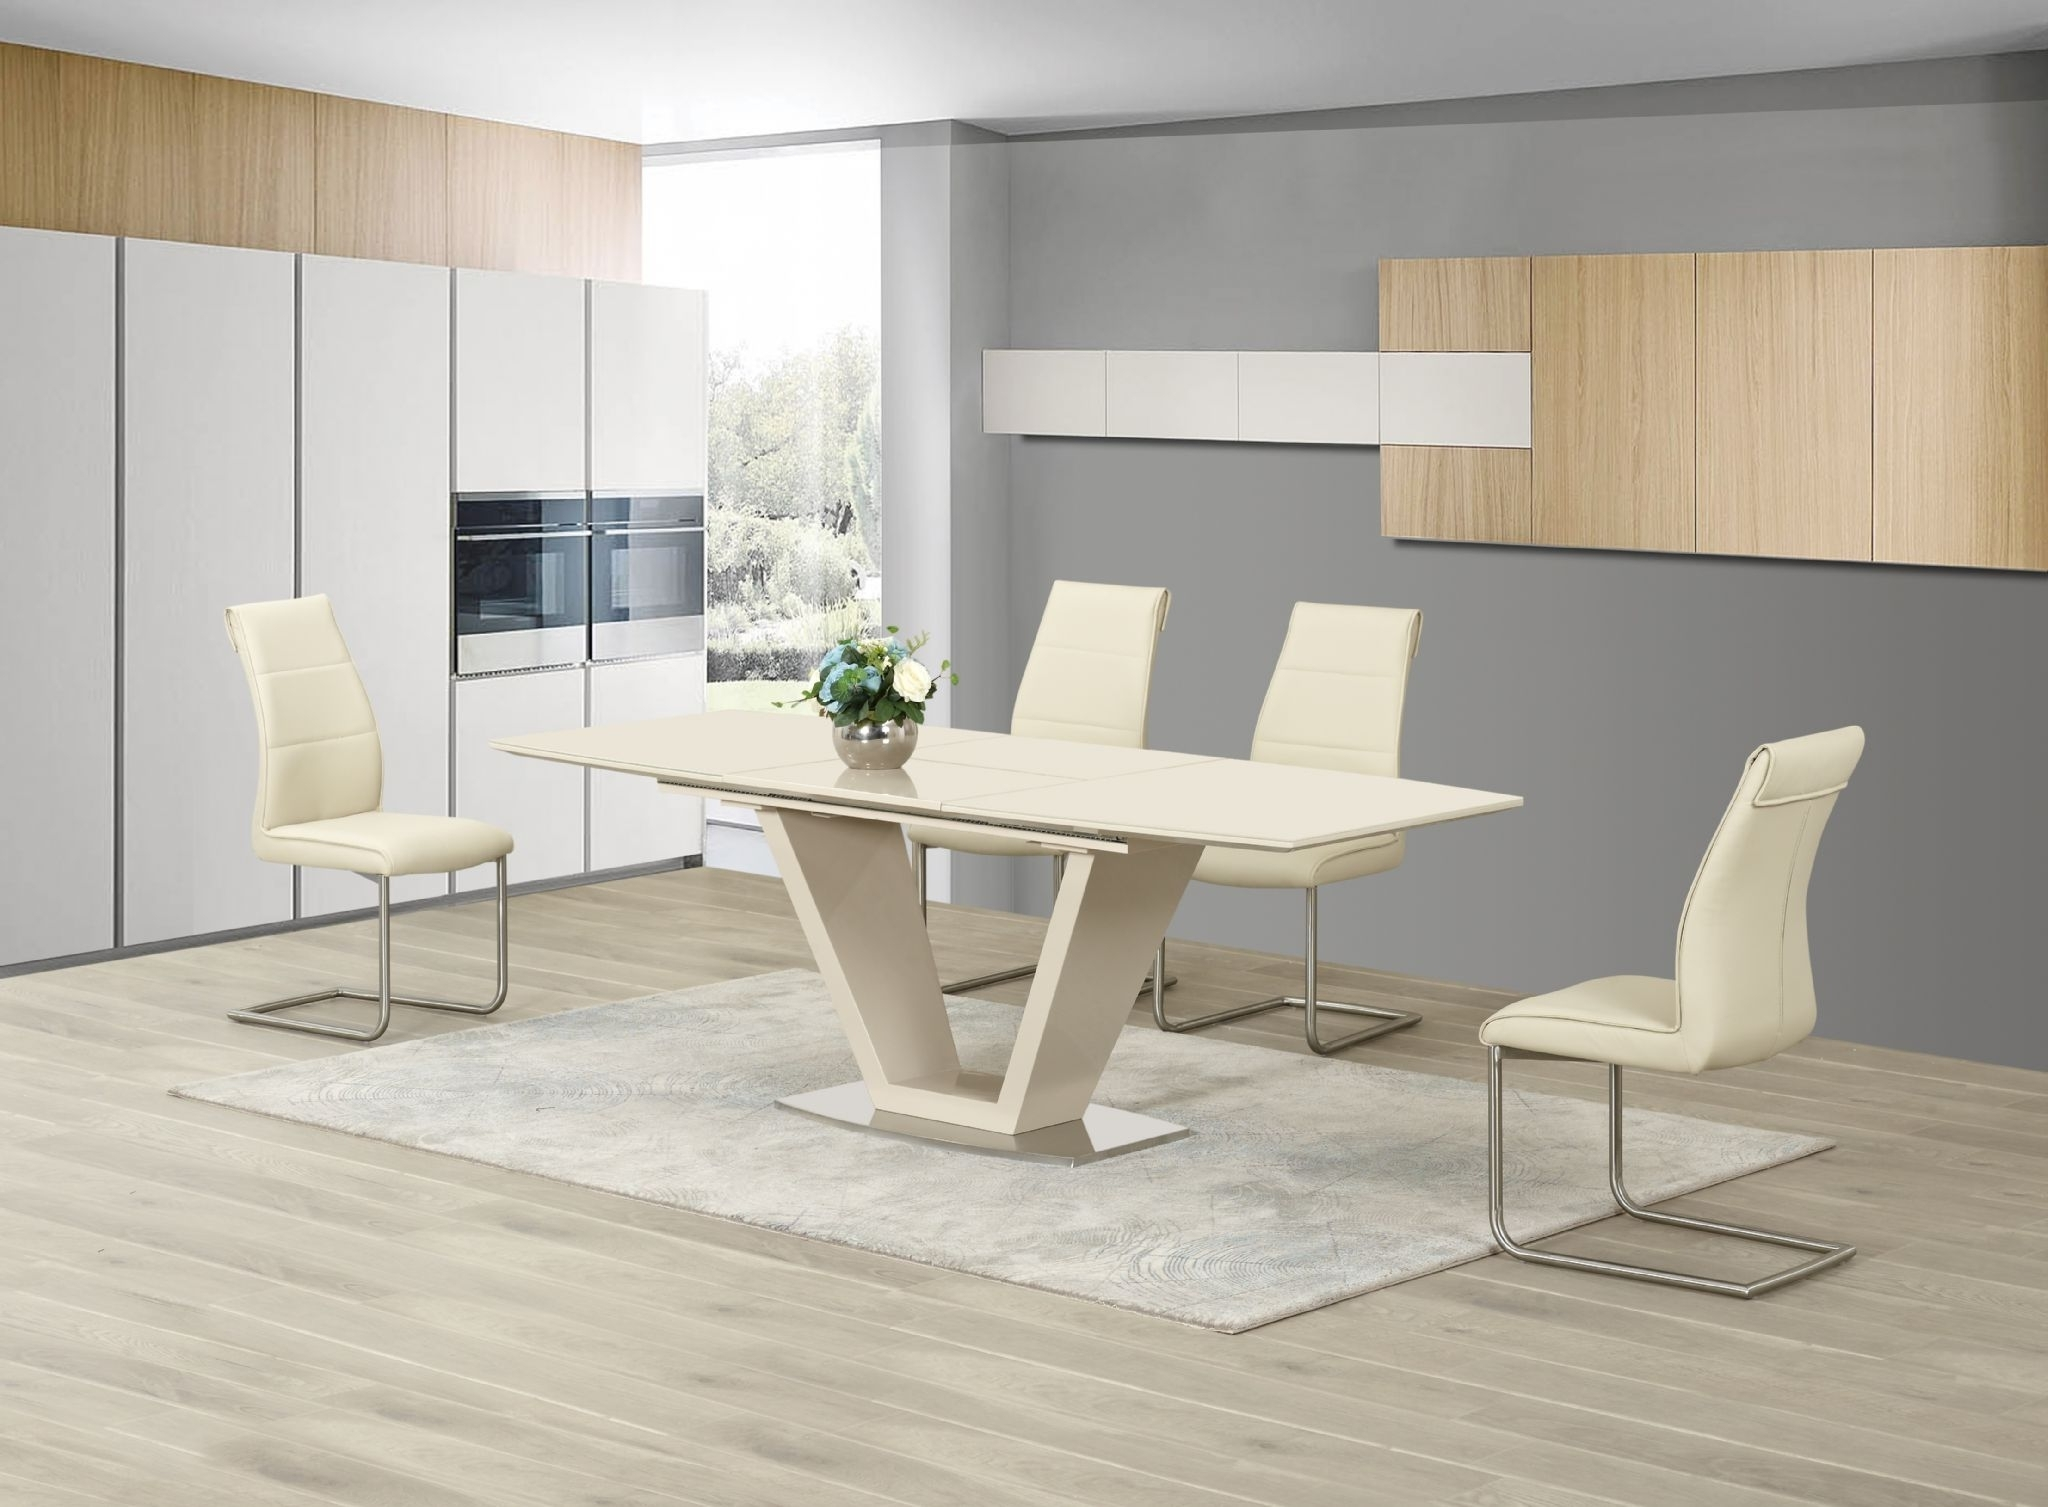 Ga Loriga Cream Gloss Glass Designer Dining Table Extending 160 220 For Widely Used Gloss Dining Tables And Chairs (View 5 of 25)